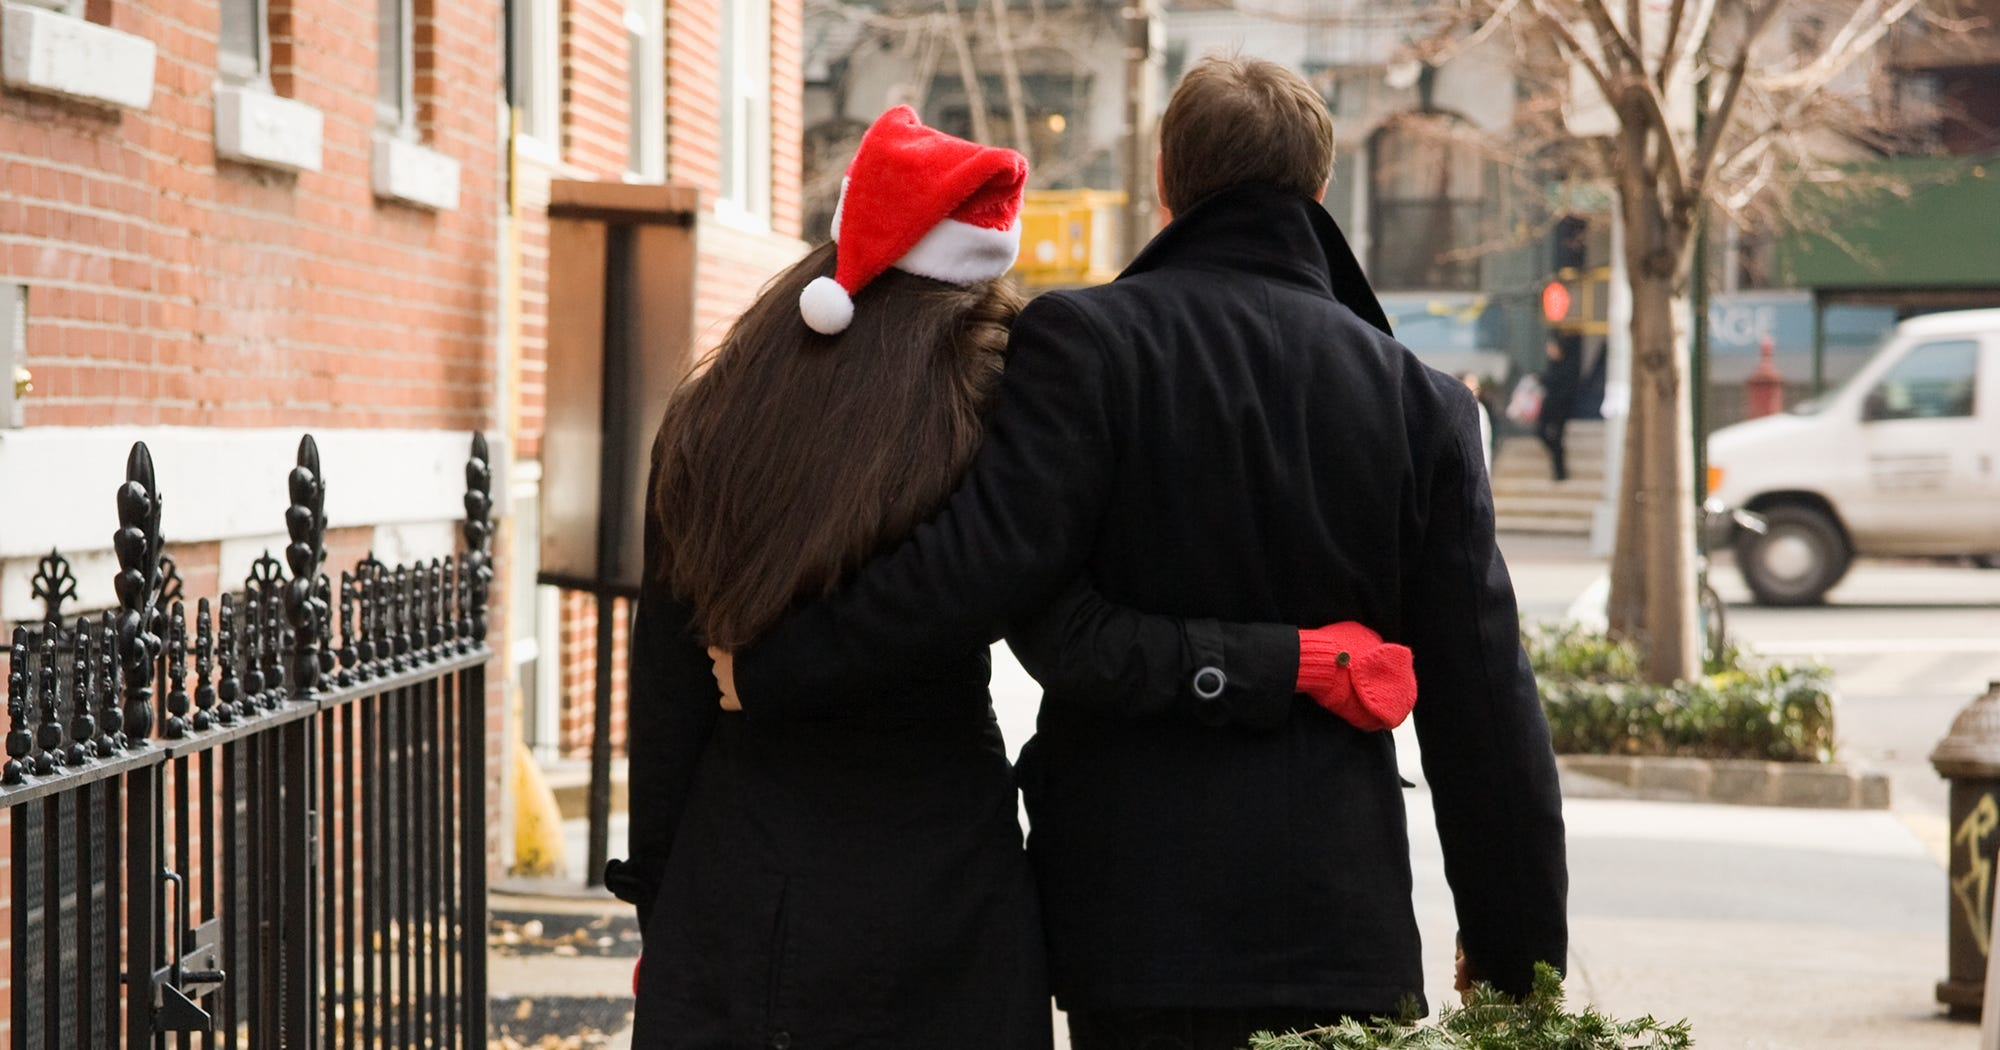 20 Experiences To Get Your Partner Instead Of A Gift